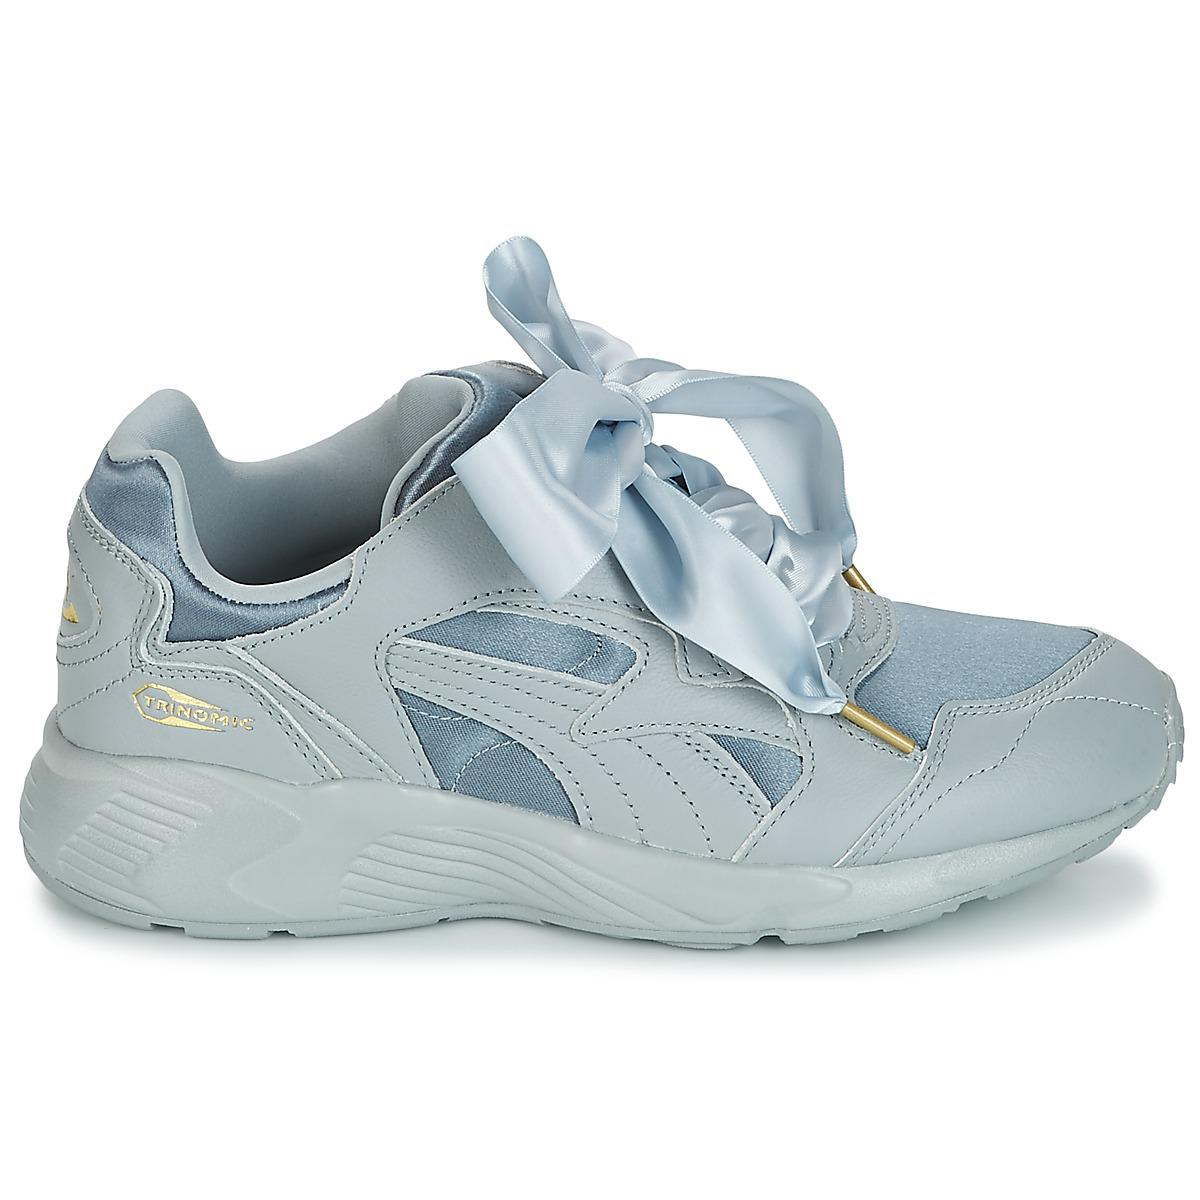 PUMA - Prevail Heart Satin Women s Shoes (trainers) In Blue - Lyst. View  fullscreen 983d0a058